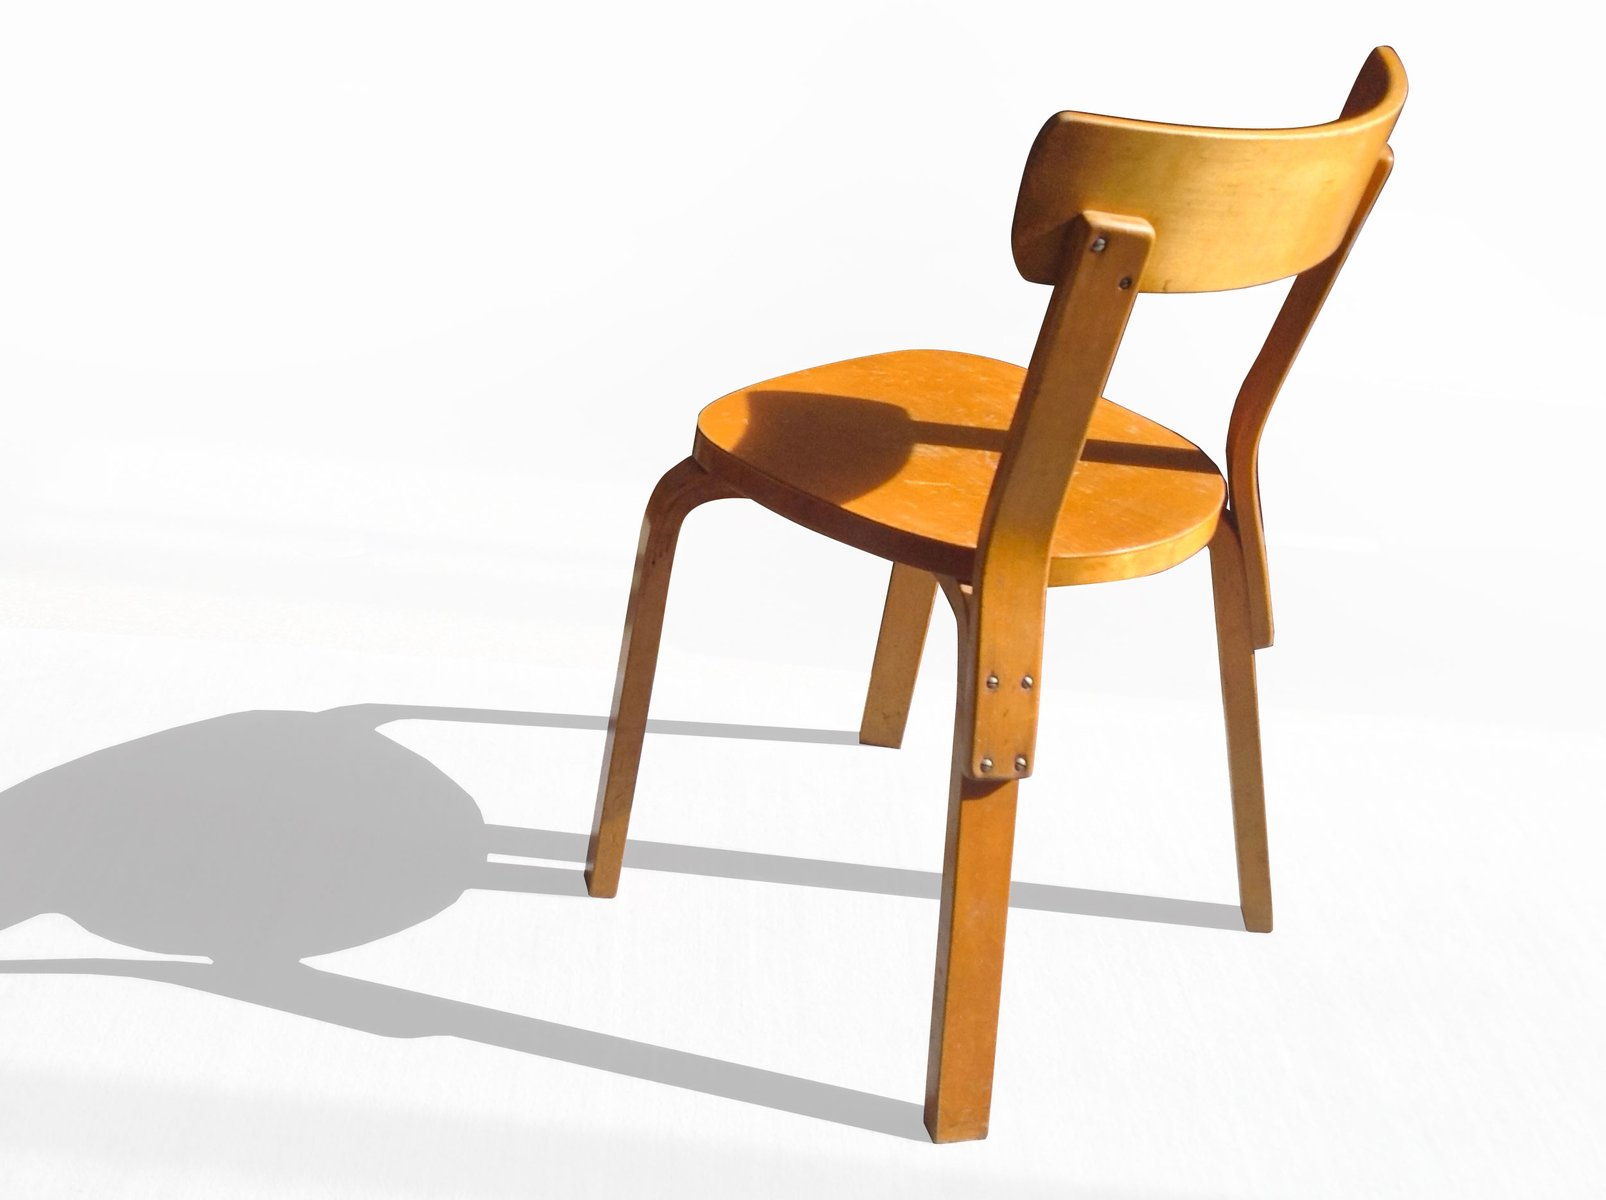 Birch side chair by alvar aalto for artek 1937 for sale for Alvar aalto chaise